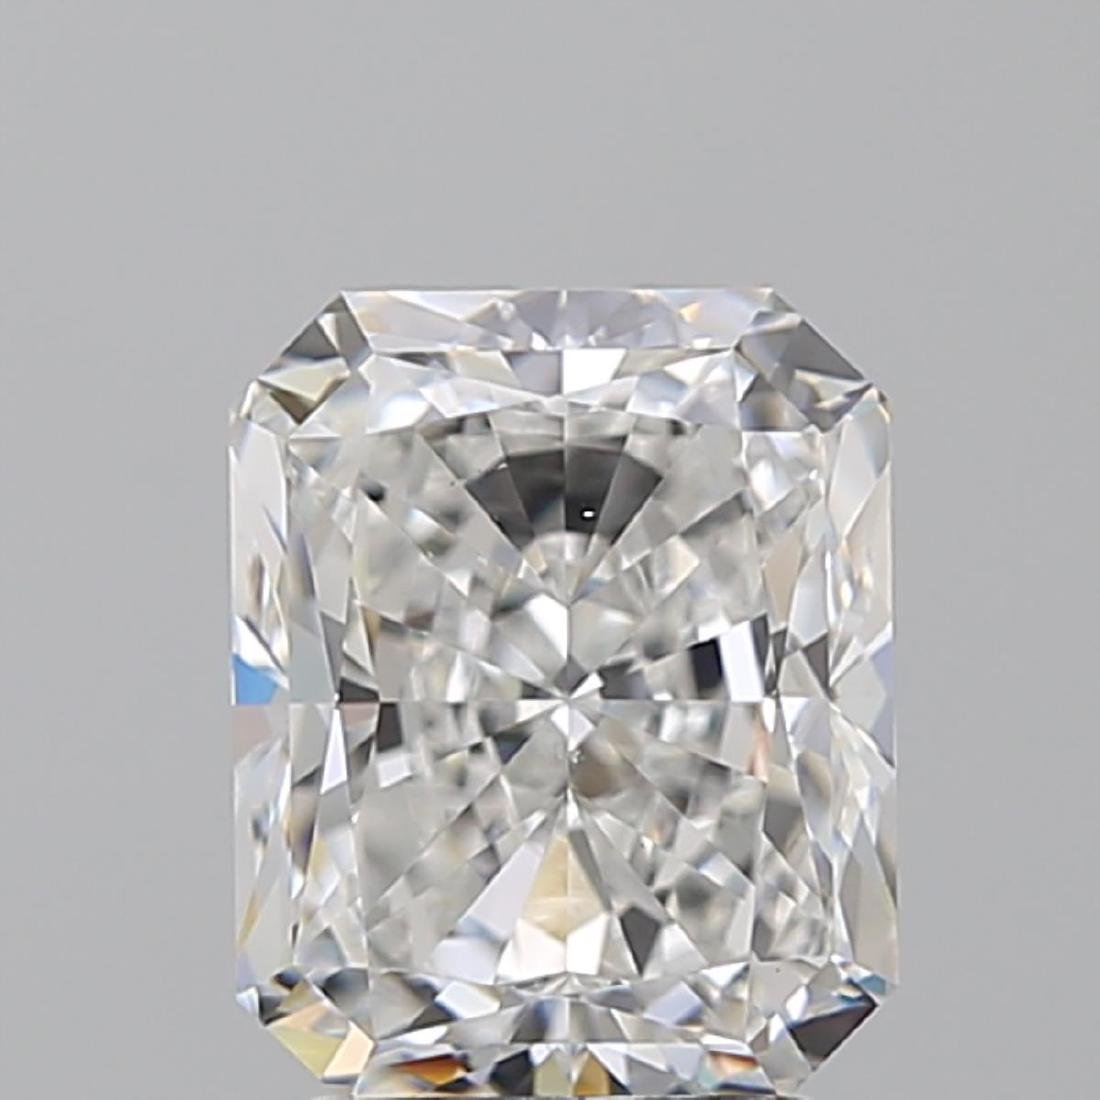 3.02 ct, Color E/VS2 , Radiant cut Diamond - 2